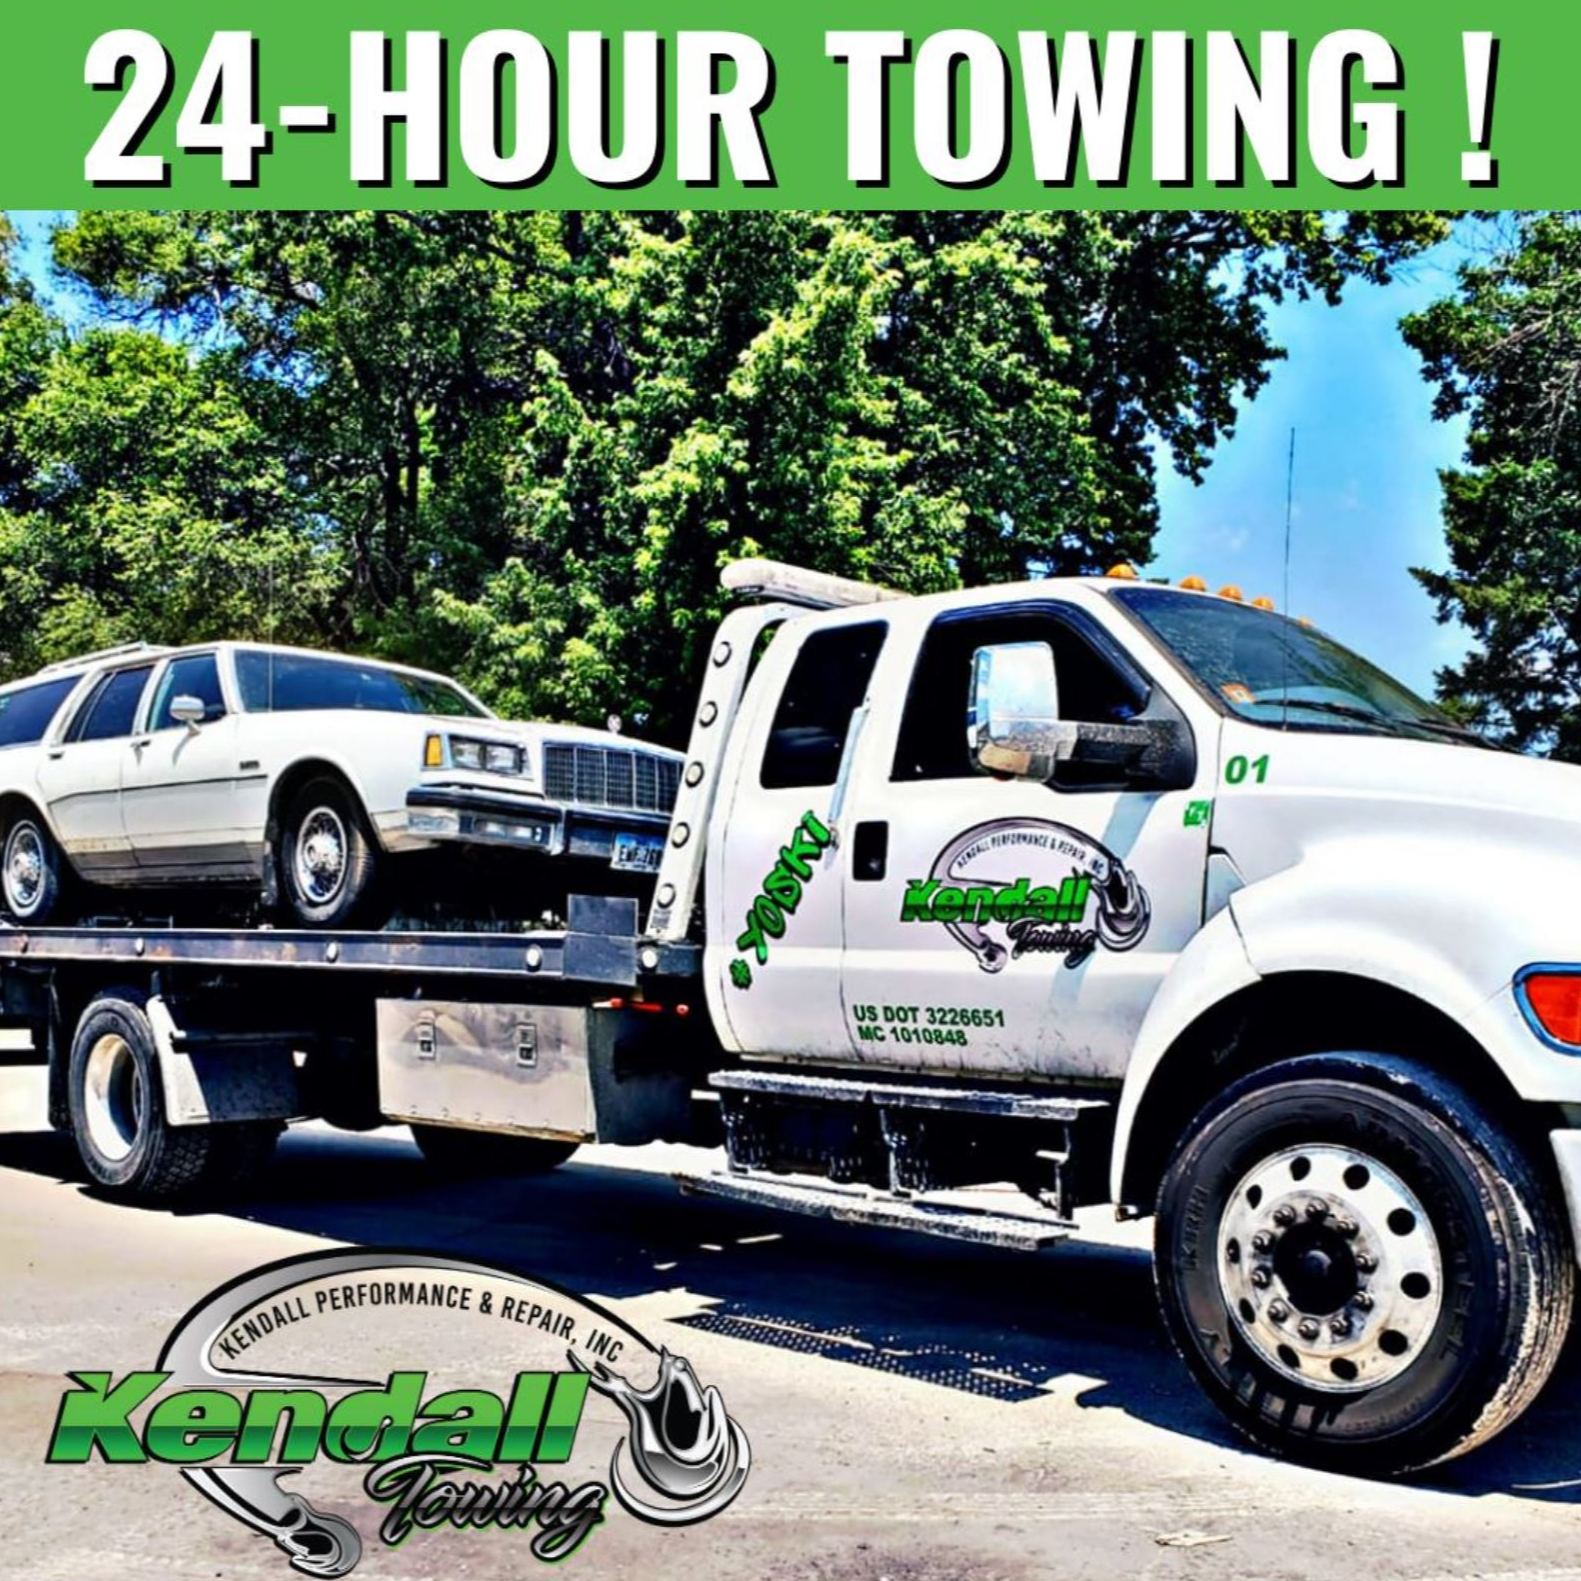 Kendall Towing logo